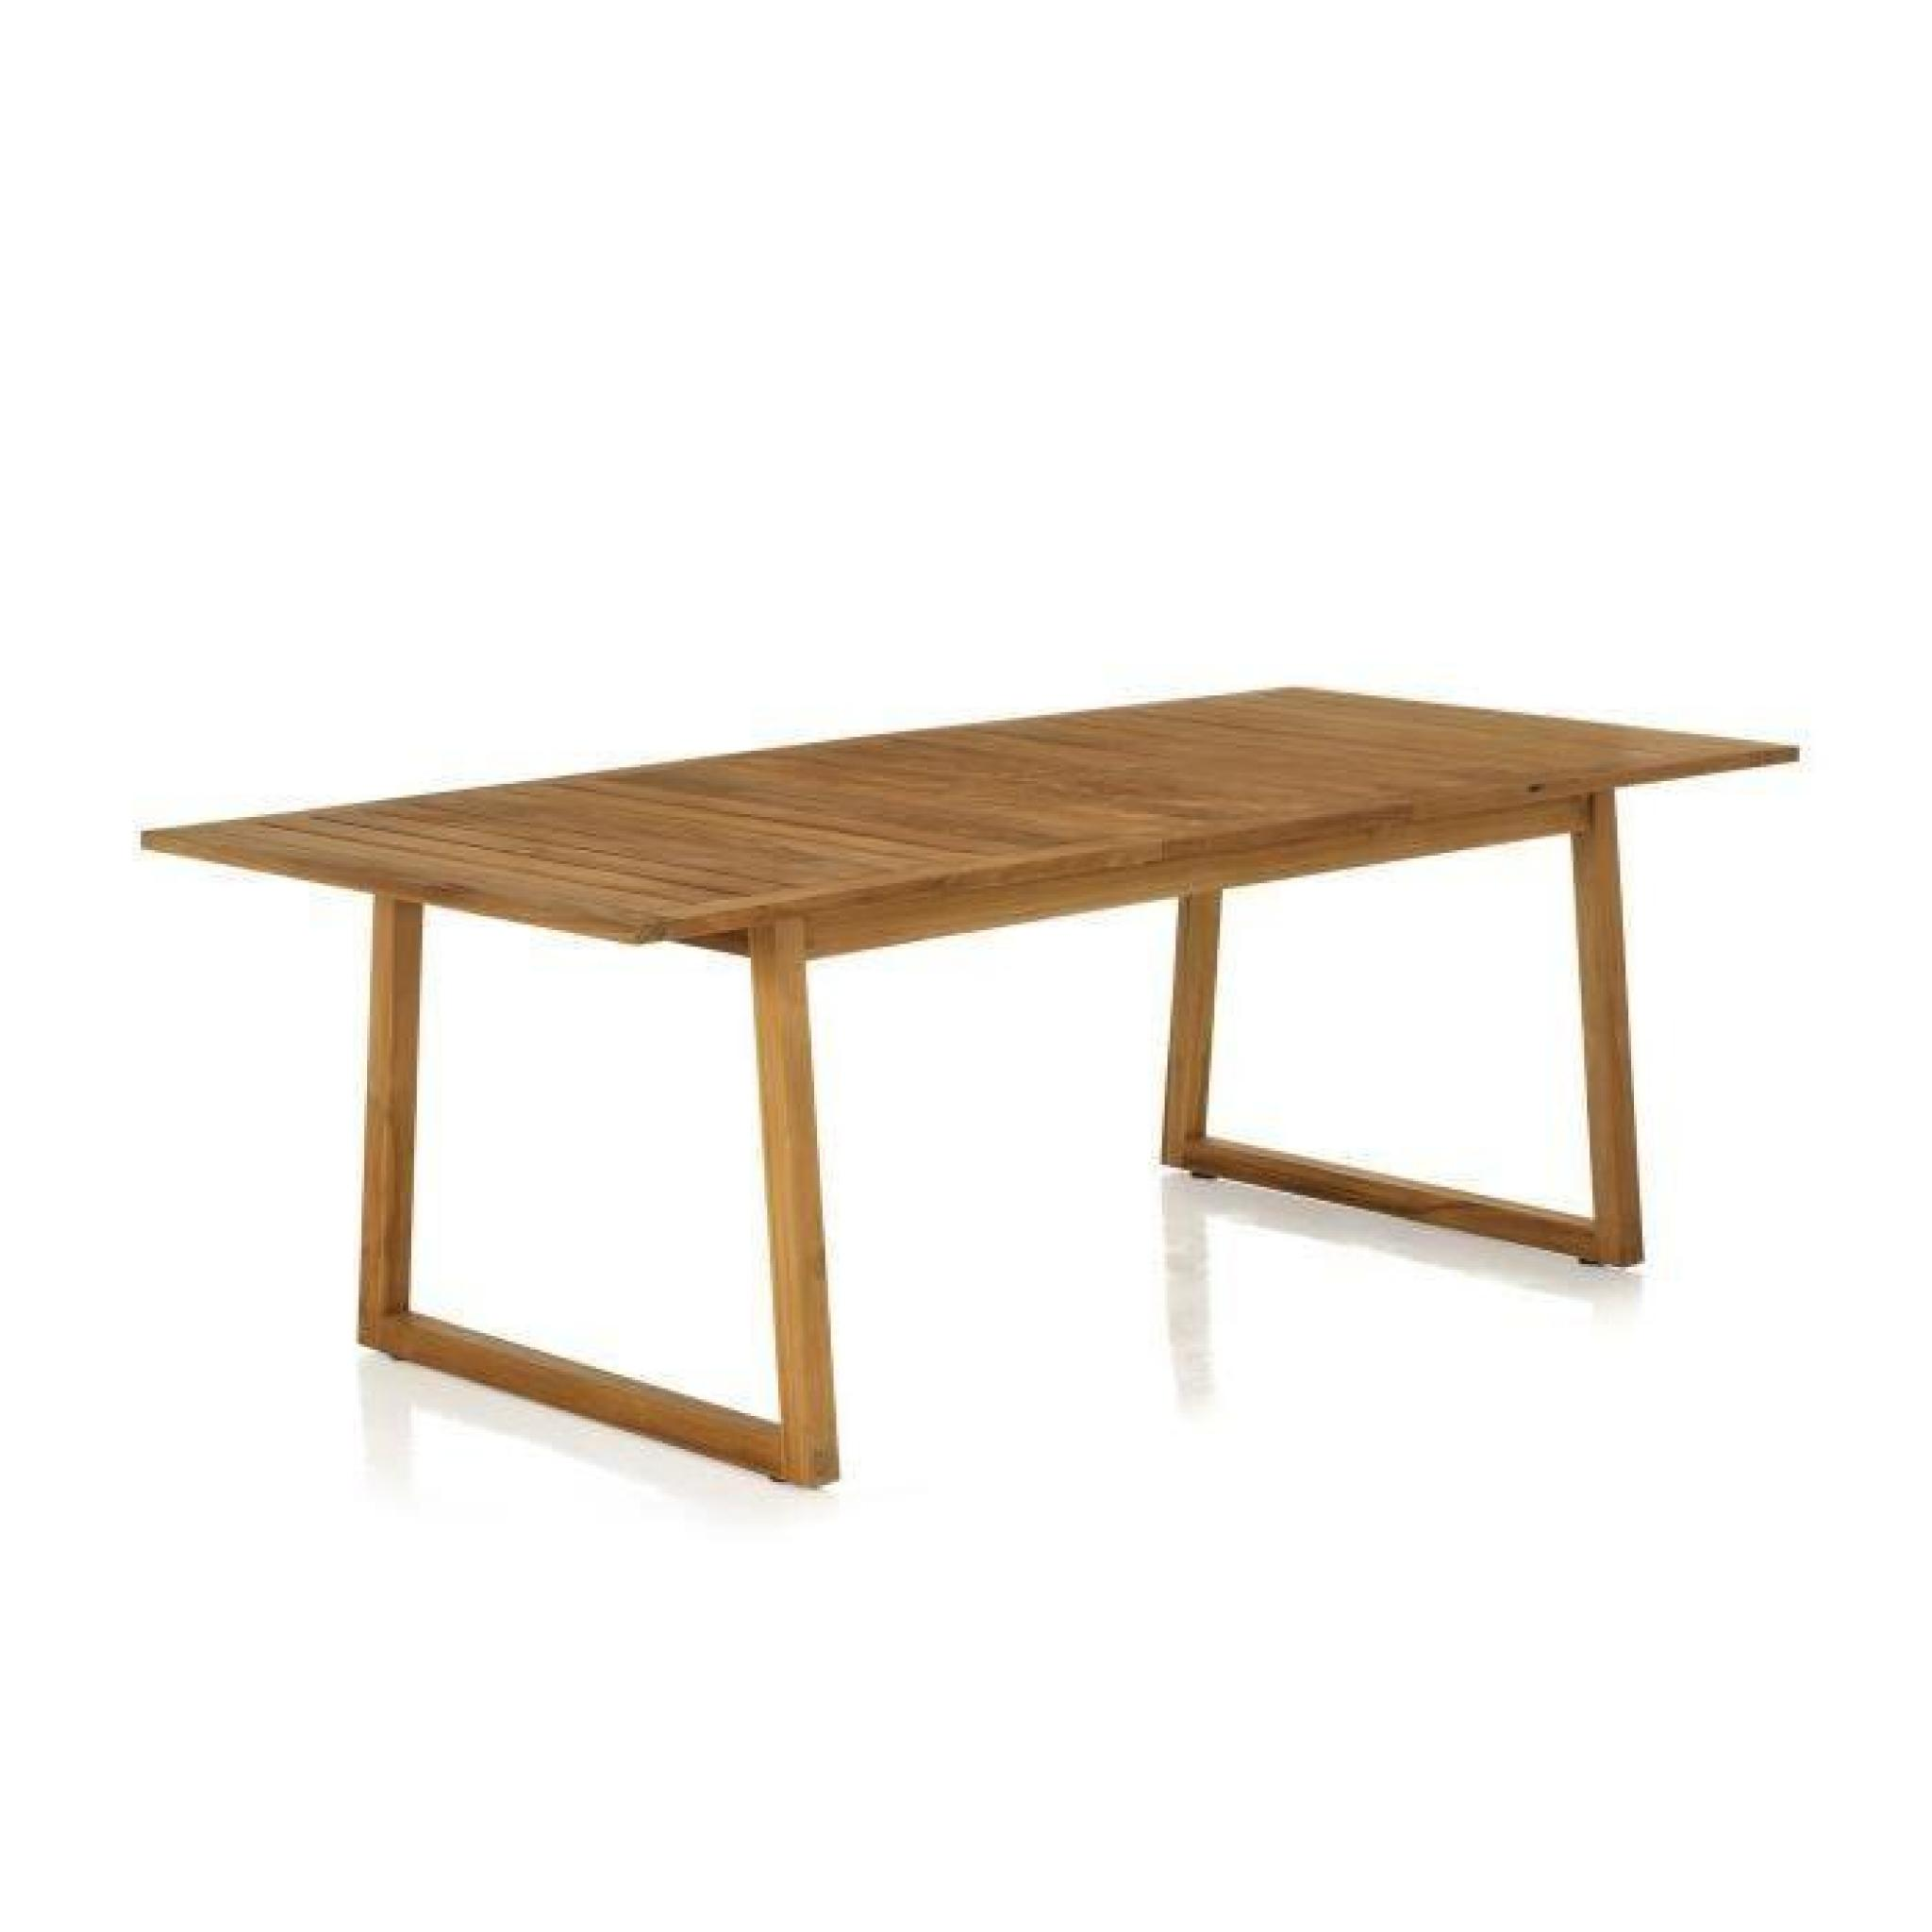 Mia table de jardin rectangulaire en teck allonge for Table de jardin en teck pas cher